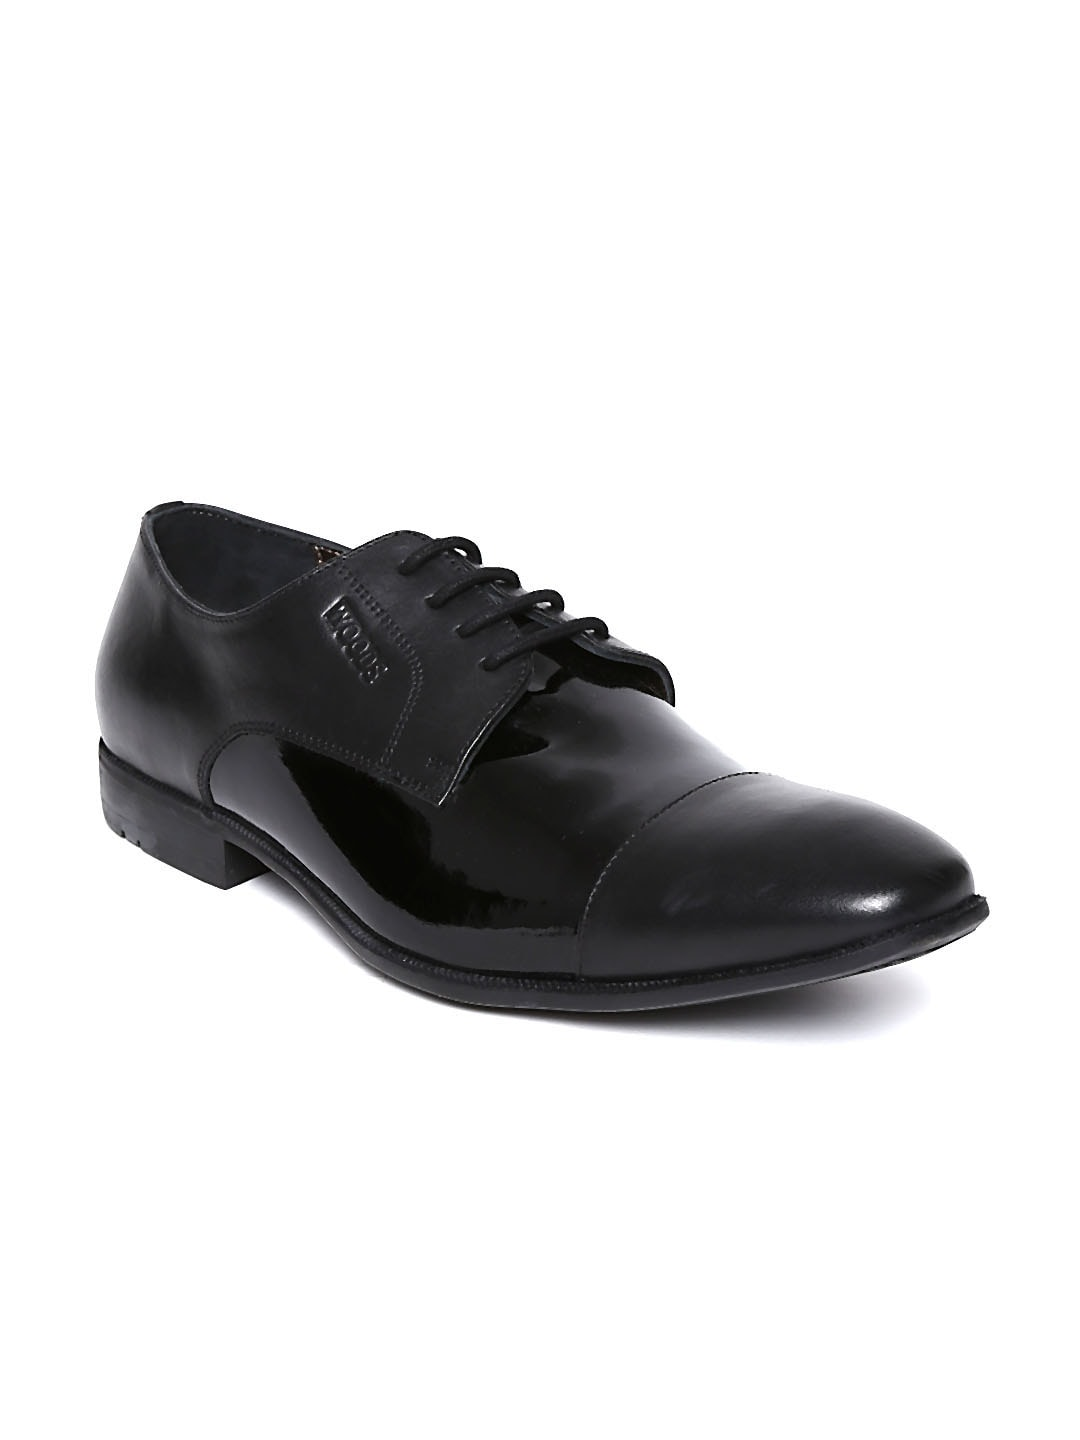 Woods Classic Men Black Crust Leather Formal Shoes